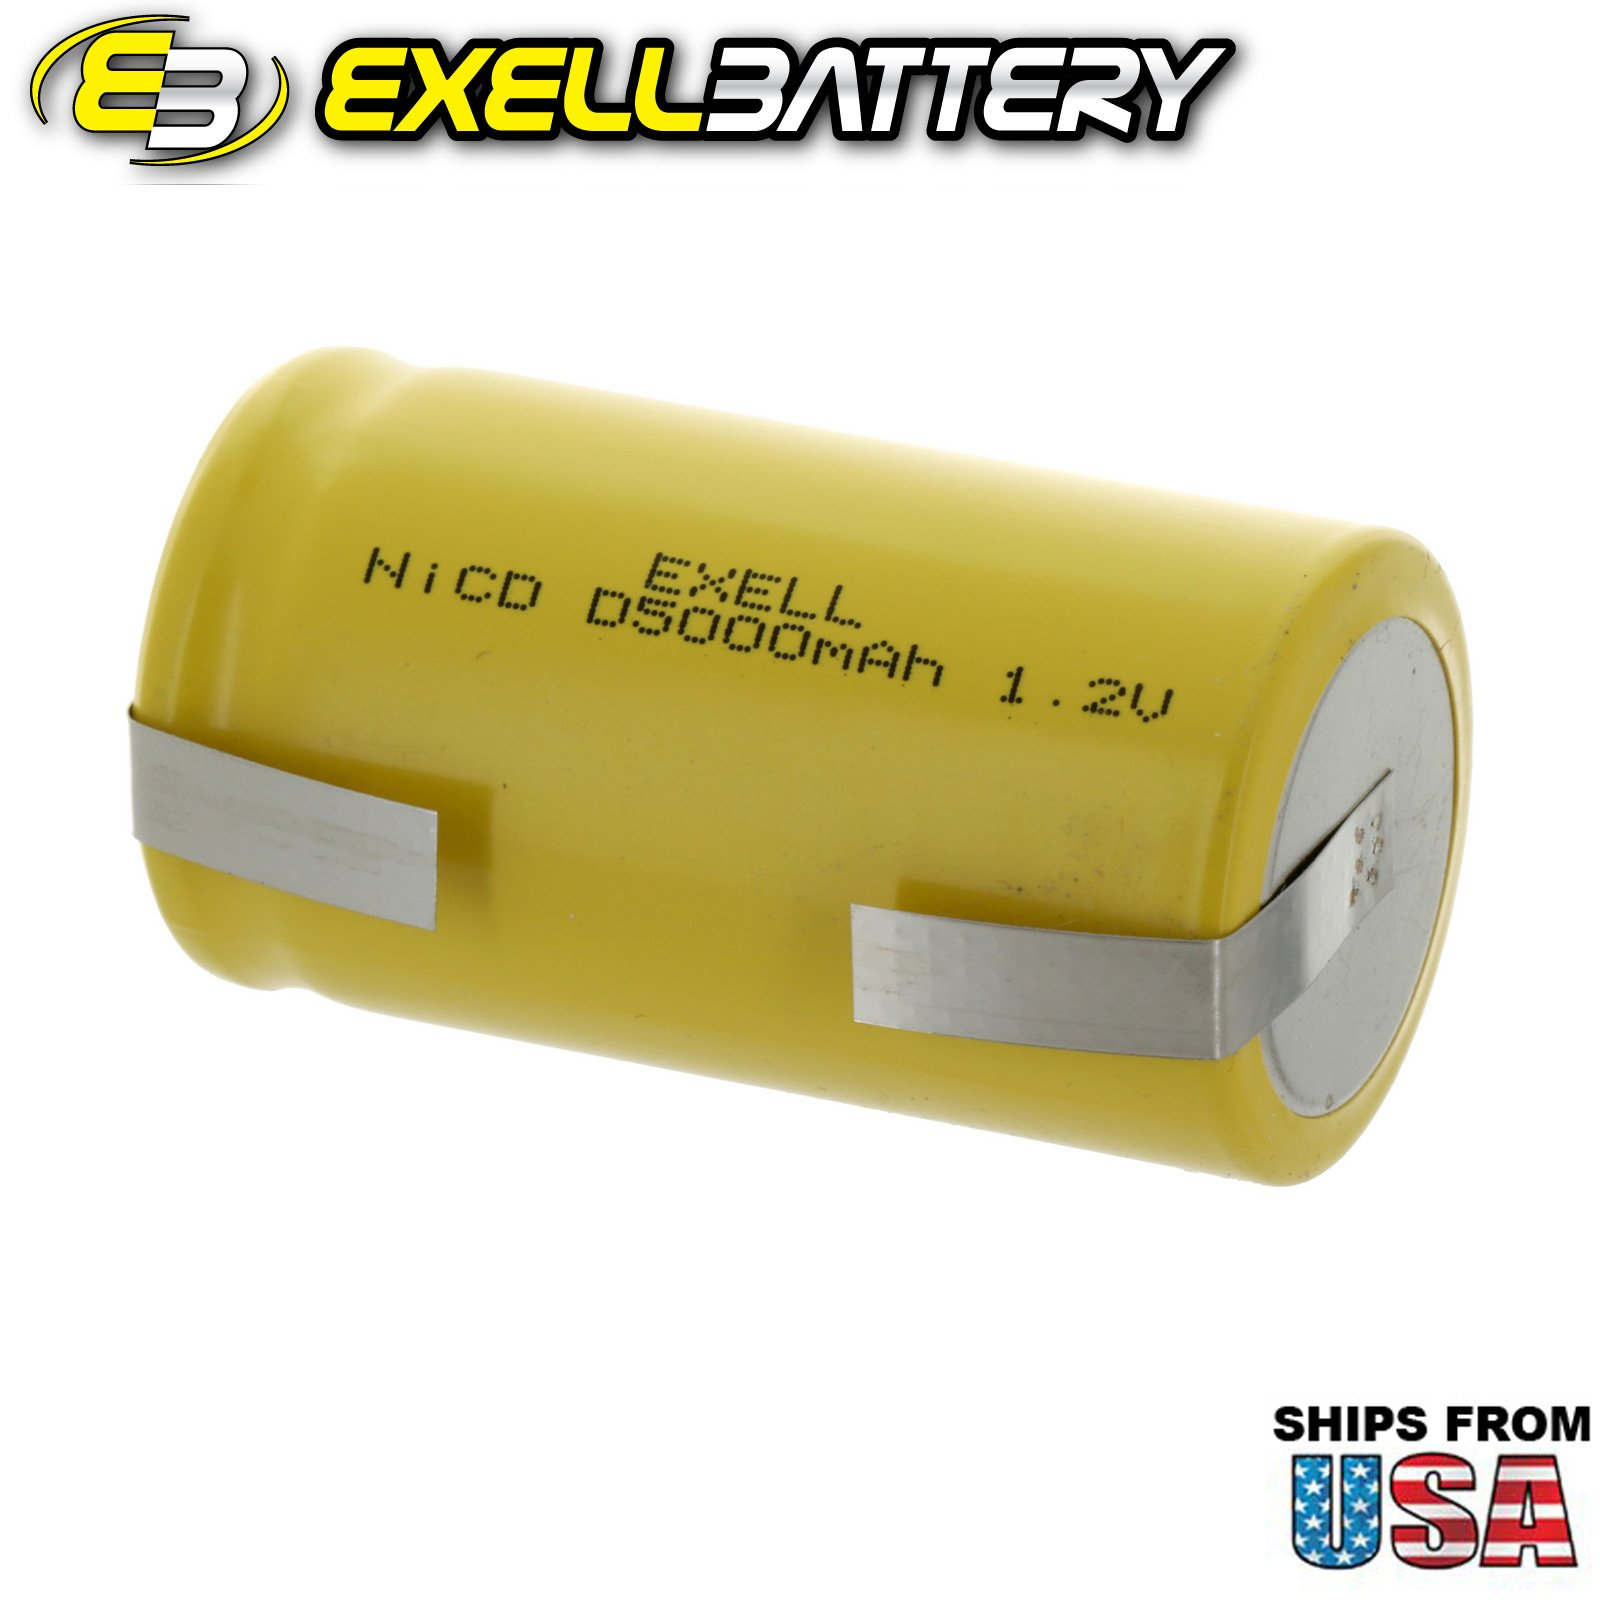 20x Exell D Size 1.2V 5000mAh NiCD Rechargeable Batteries with Tabs for medical instruments/equipment, electric razors, toothbrushes, radio controlled devices, electric tools by Exell Battery (Image #3)